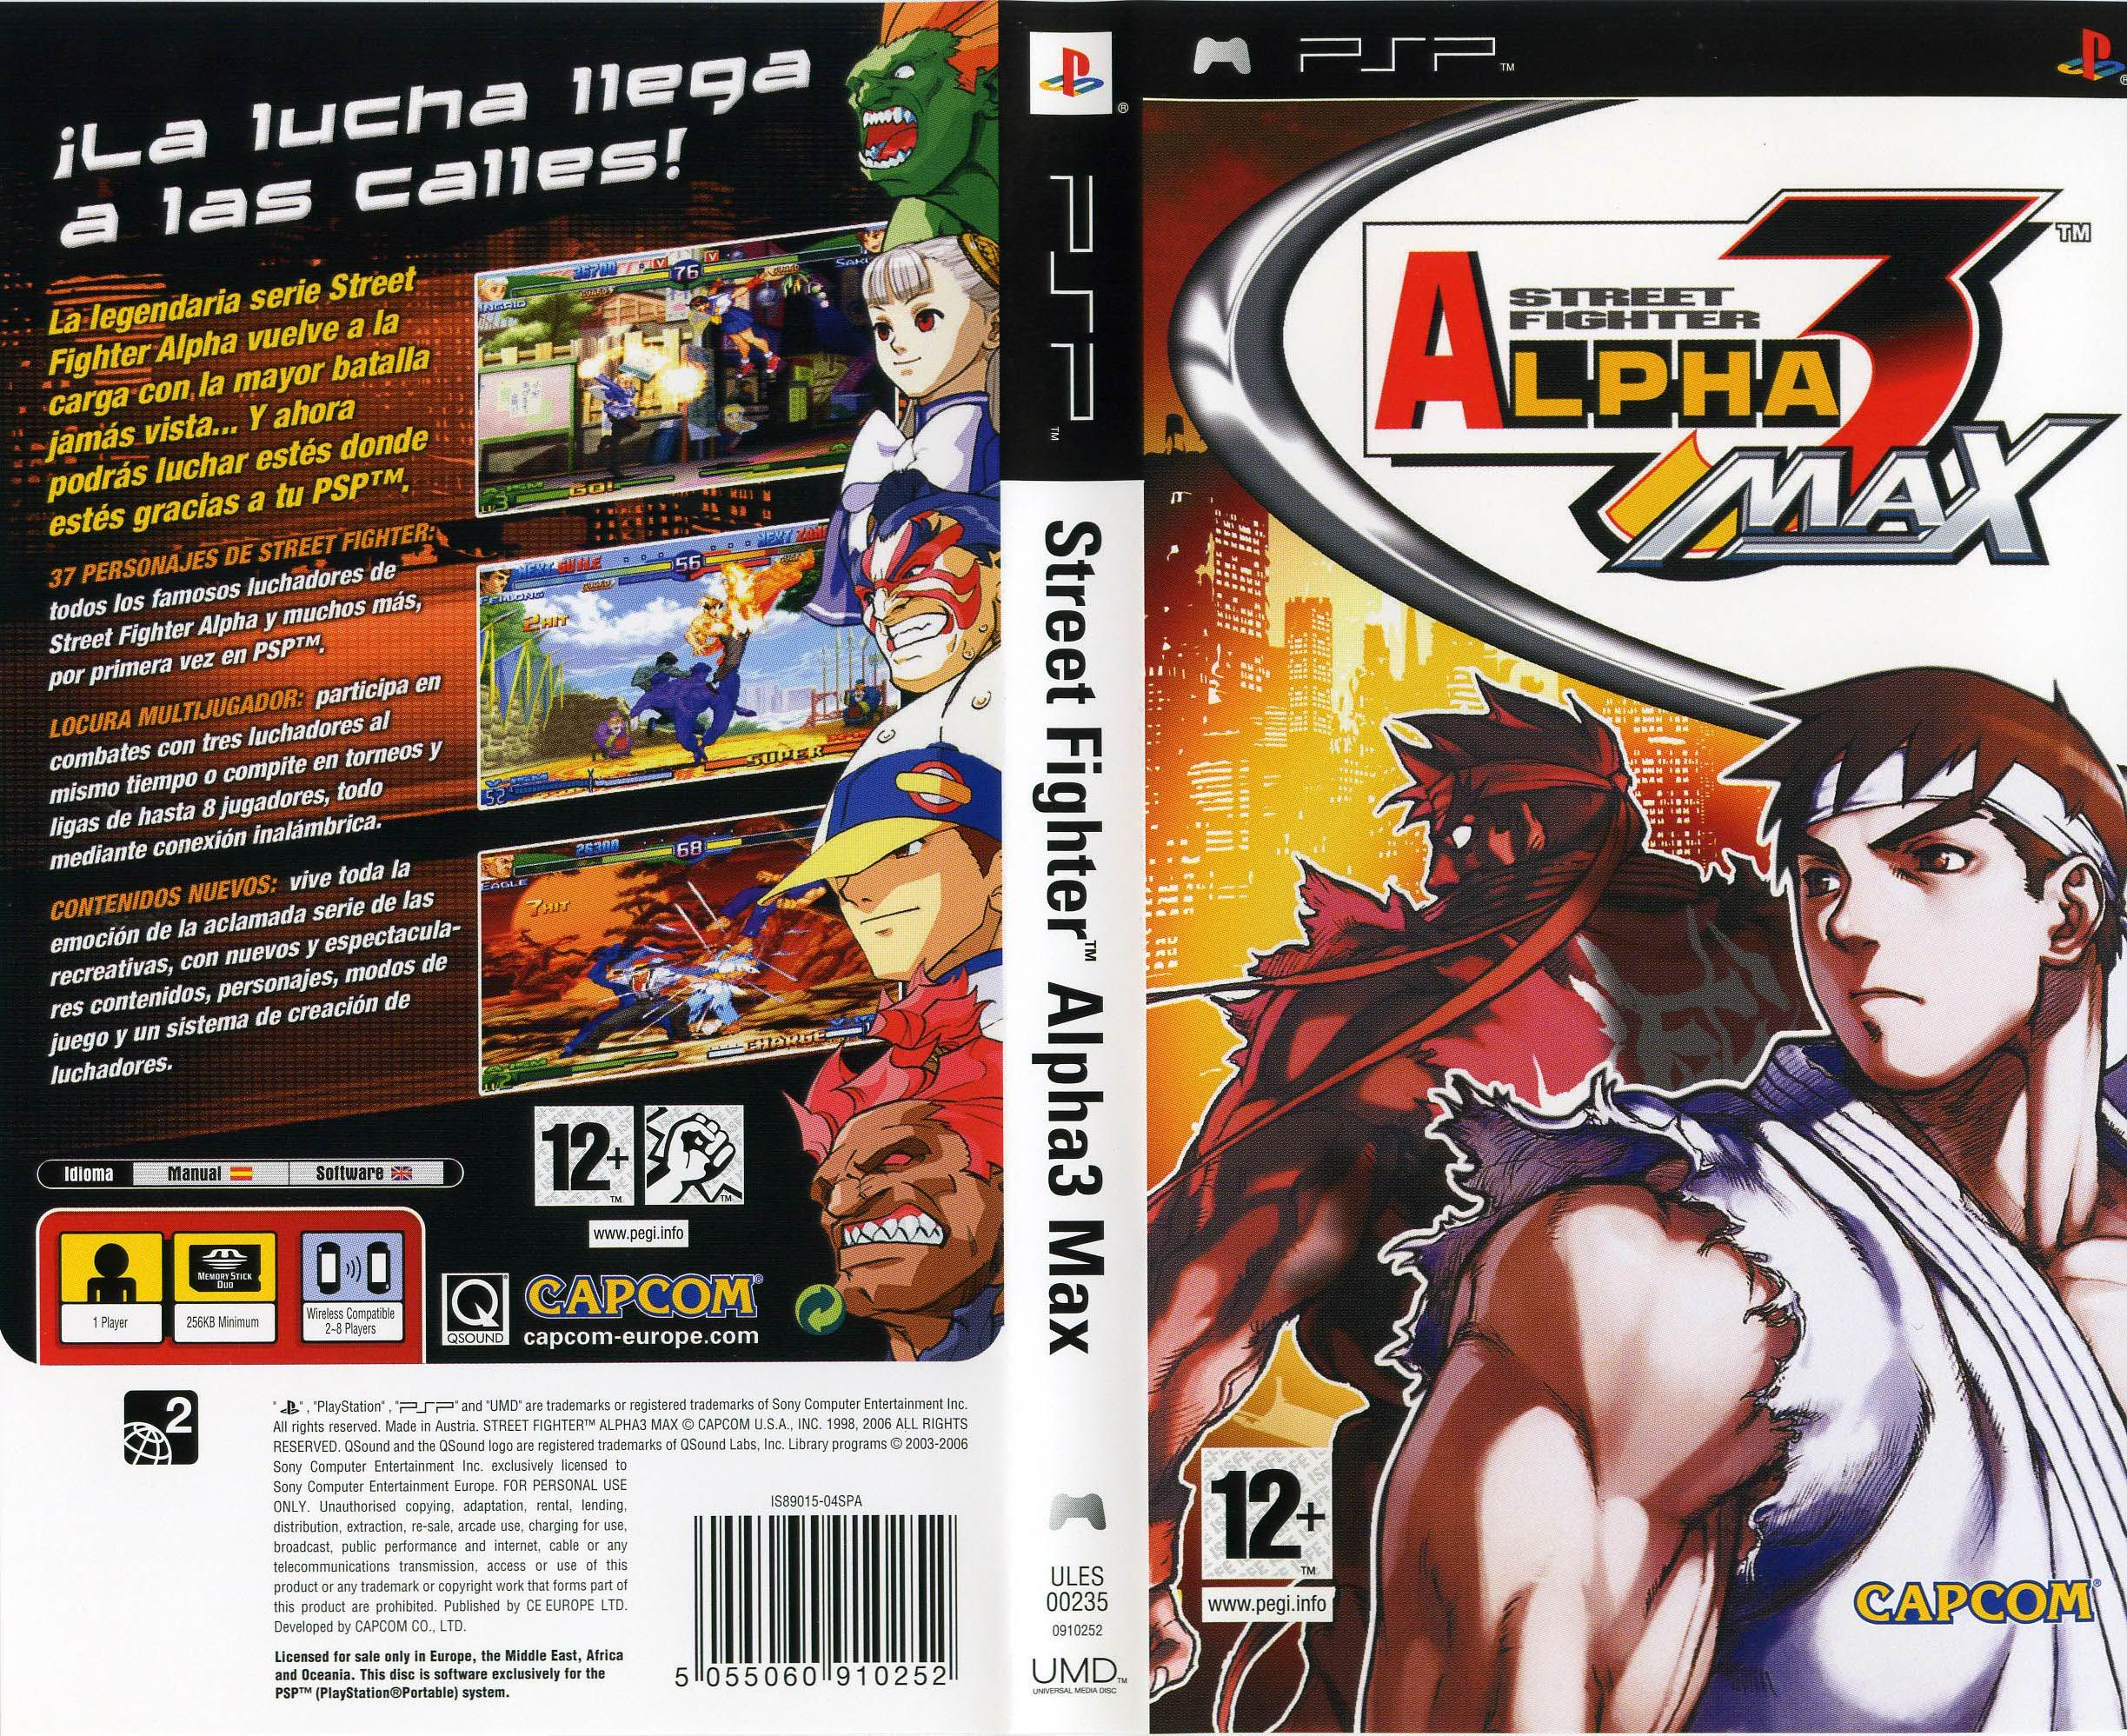 Street Fighter Alpha 3 MAX wallpapers, Video Game, HQ Street